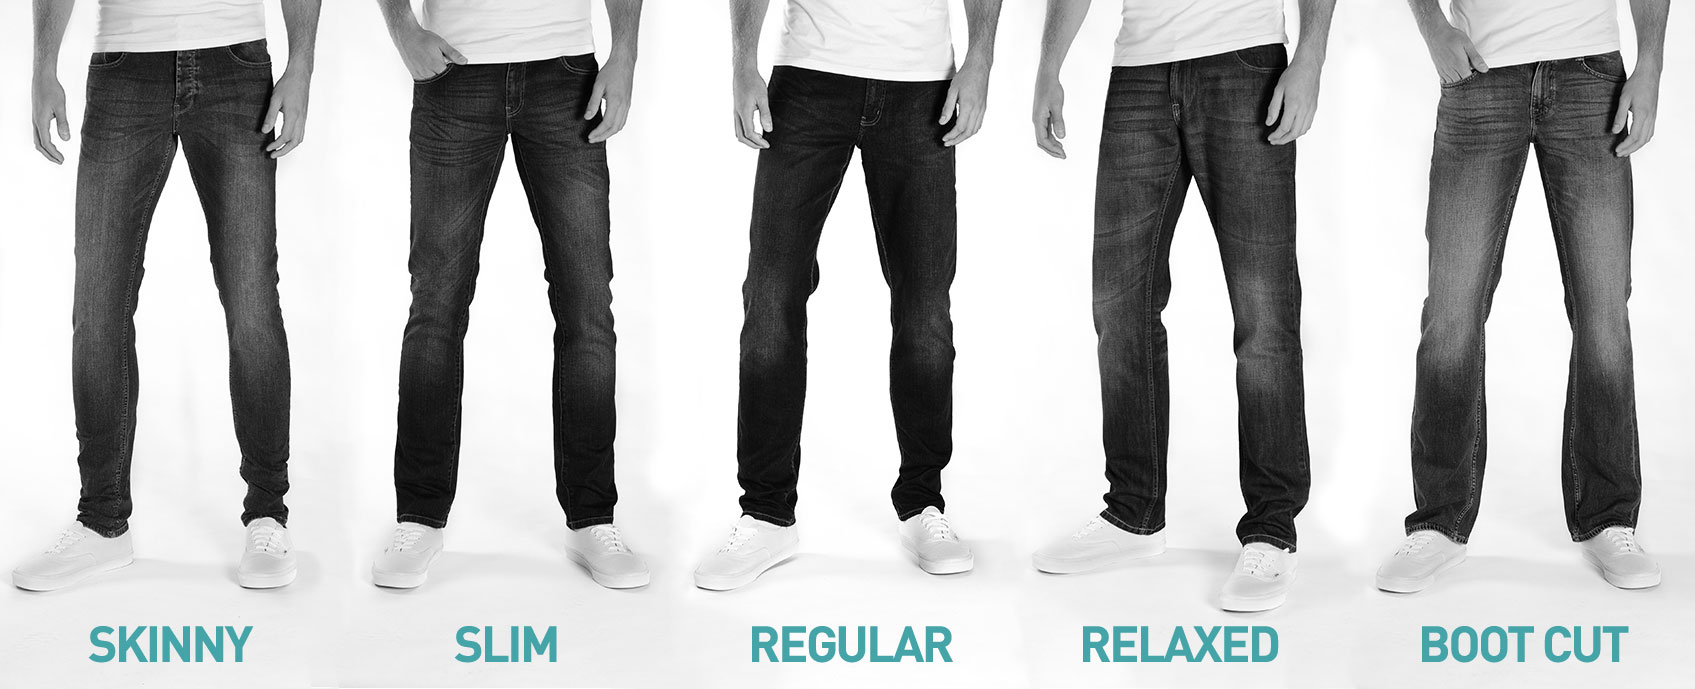 Tall Mens Jeans 36 38 40 Inch Inseams Extra Tall Mens Clothing